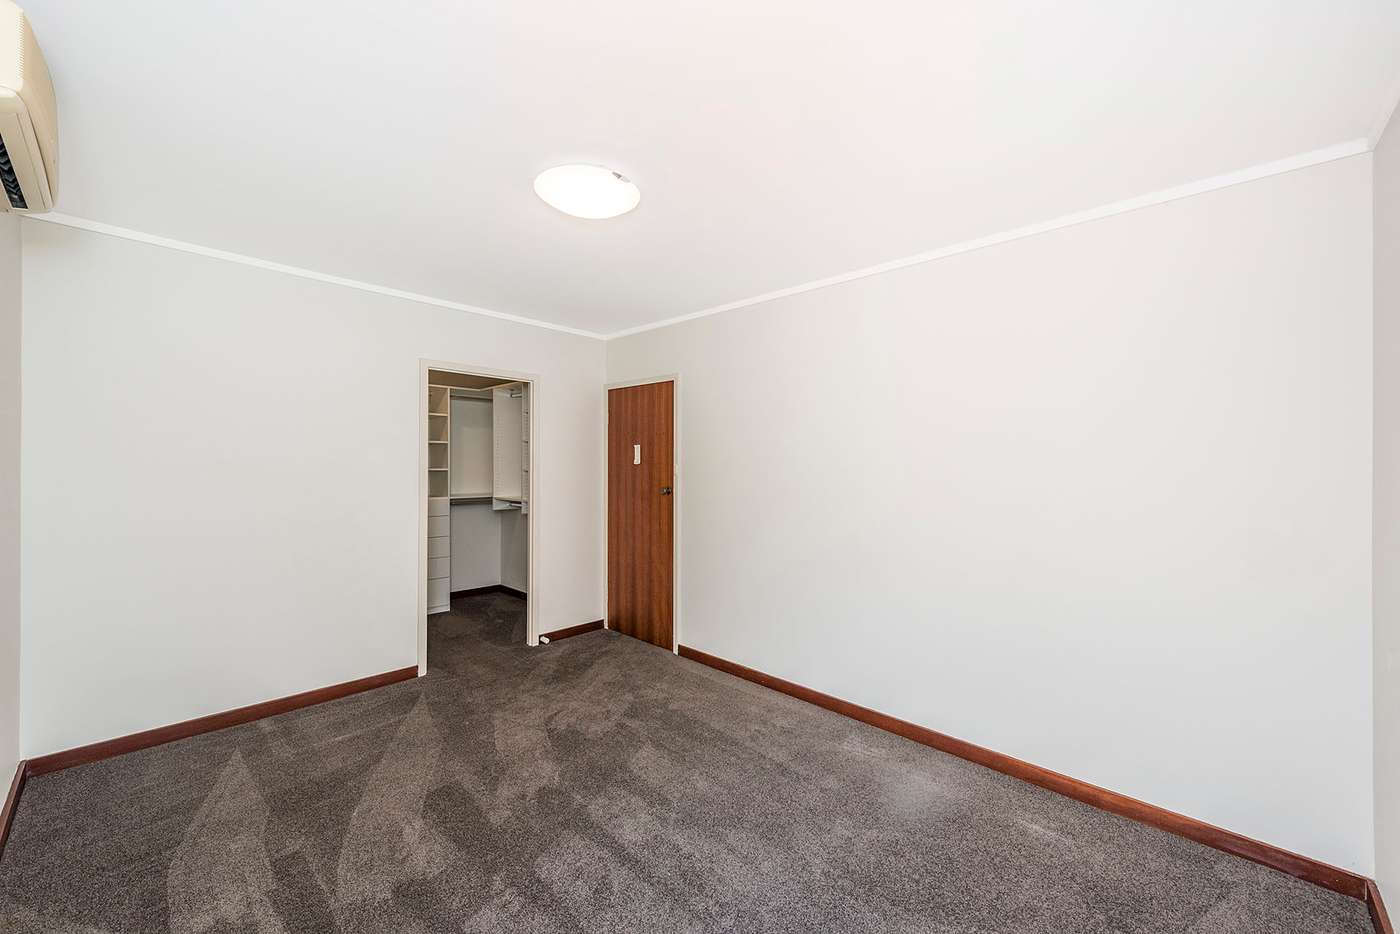 Seventh view of Homely townhouse listing, 4/14 Mill Point Road, South Perth WA 6151